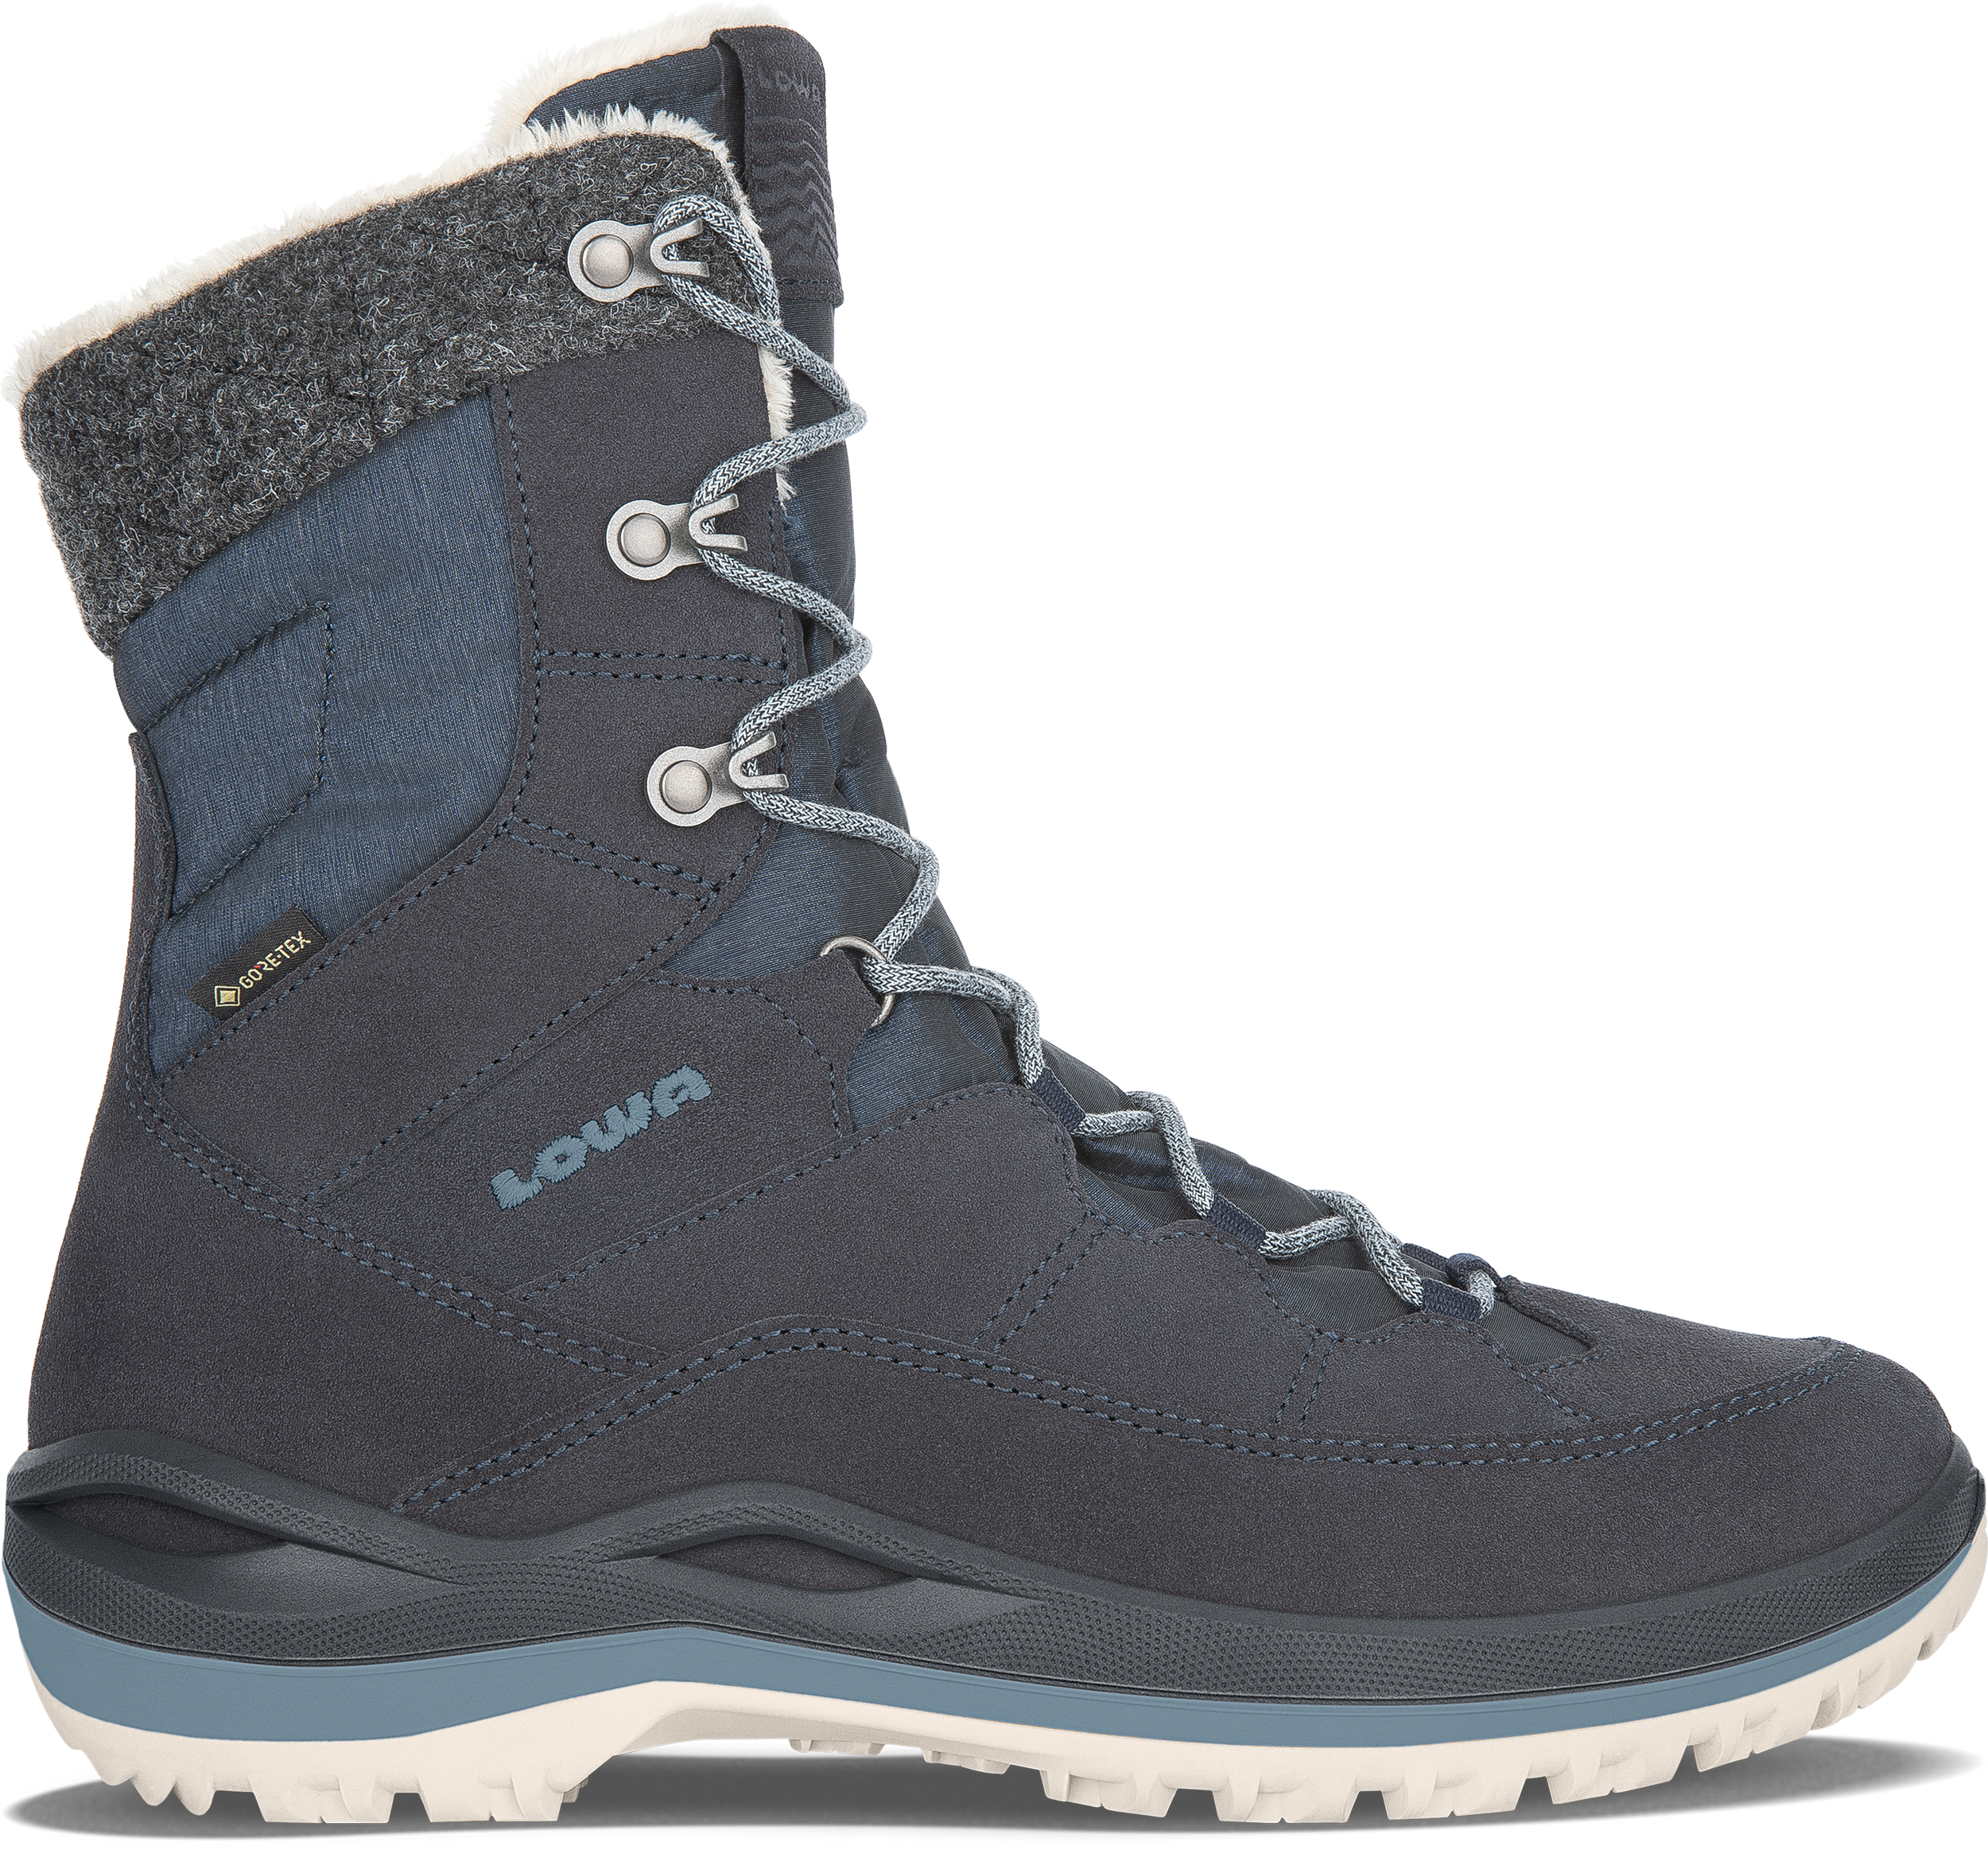 Girl/'s EU 31 Details about  /Lowa Calcetina GTX Mid Boots msrp $130 US 0.5